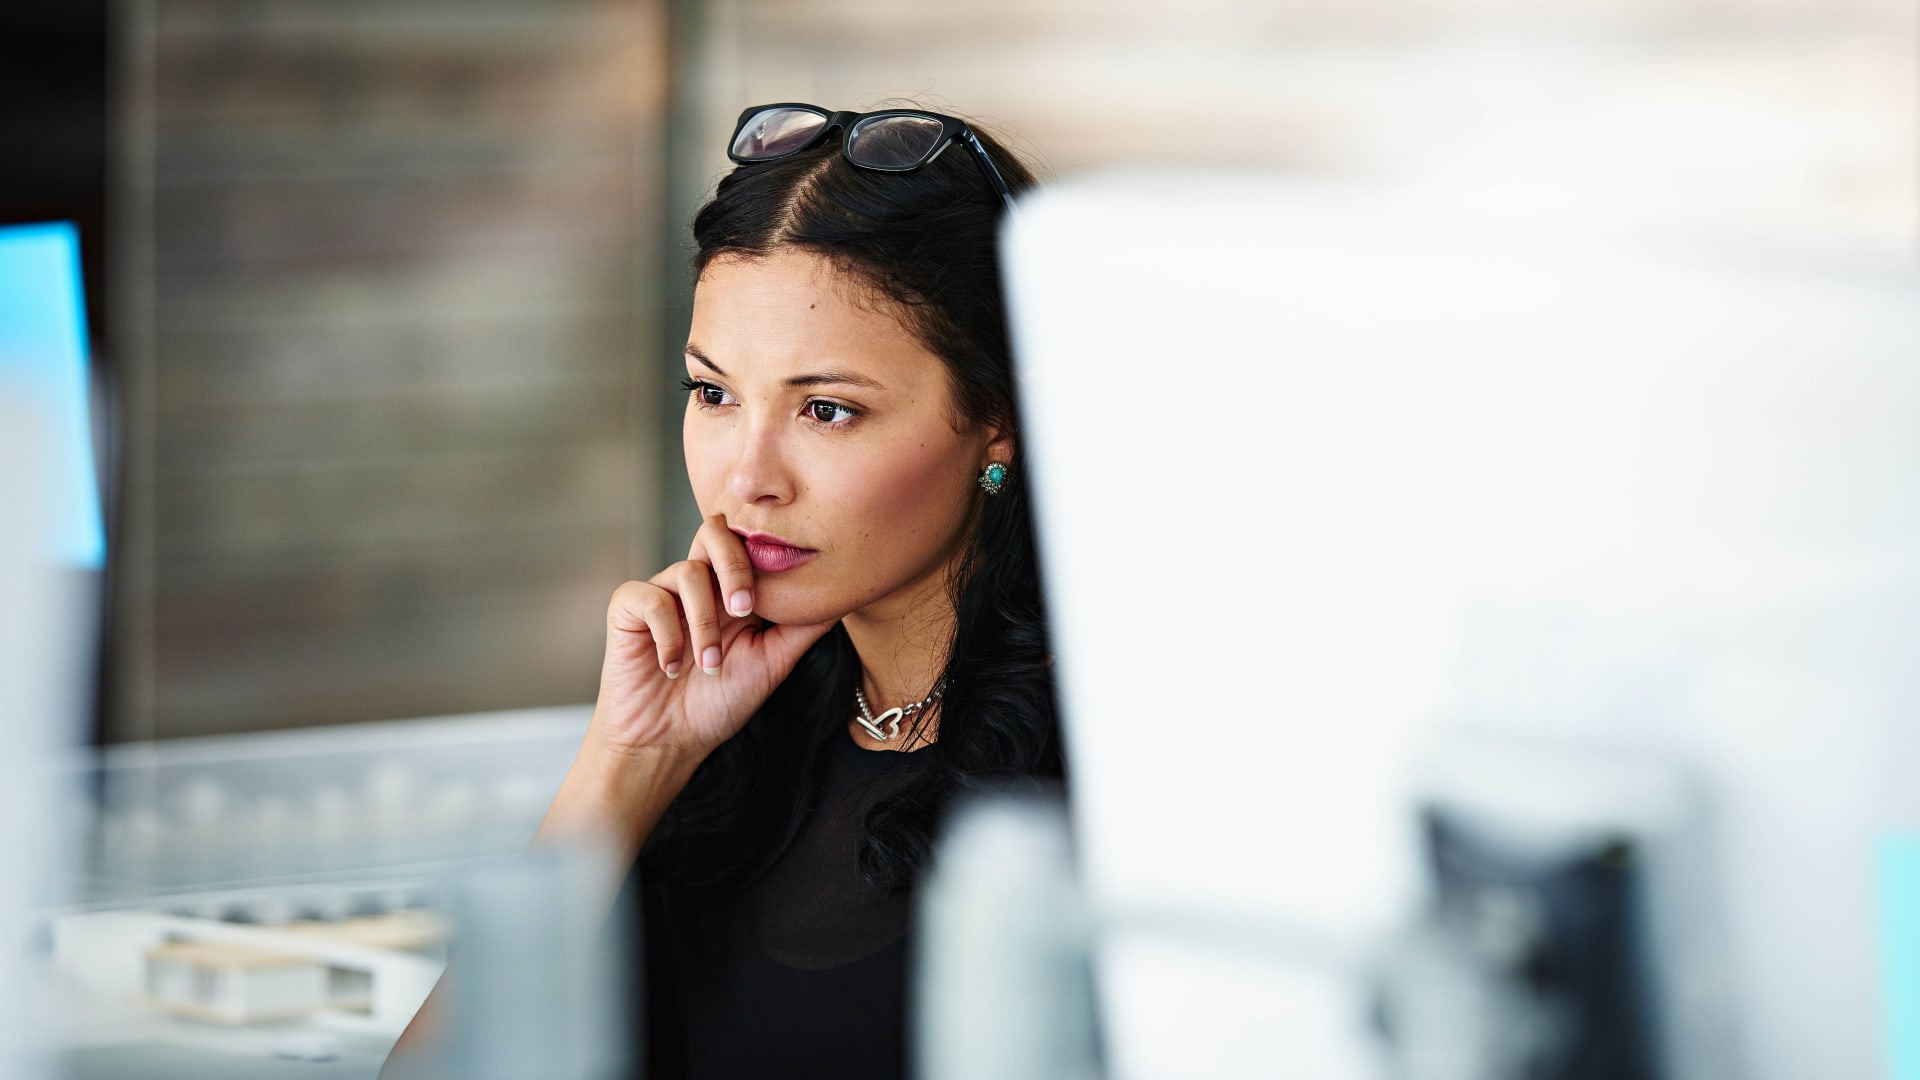 New Report Uncovers Gender Discrepancy and What It Takes to Create a Sense of Belonging at Work